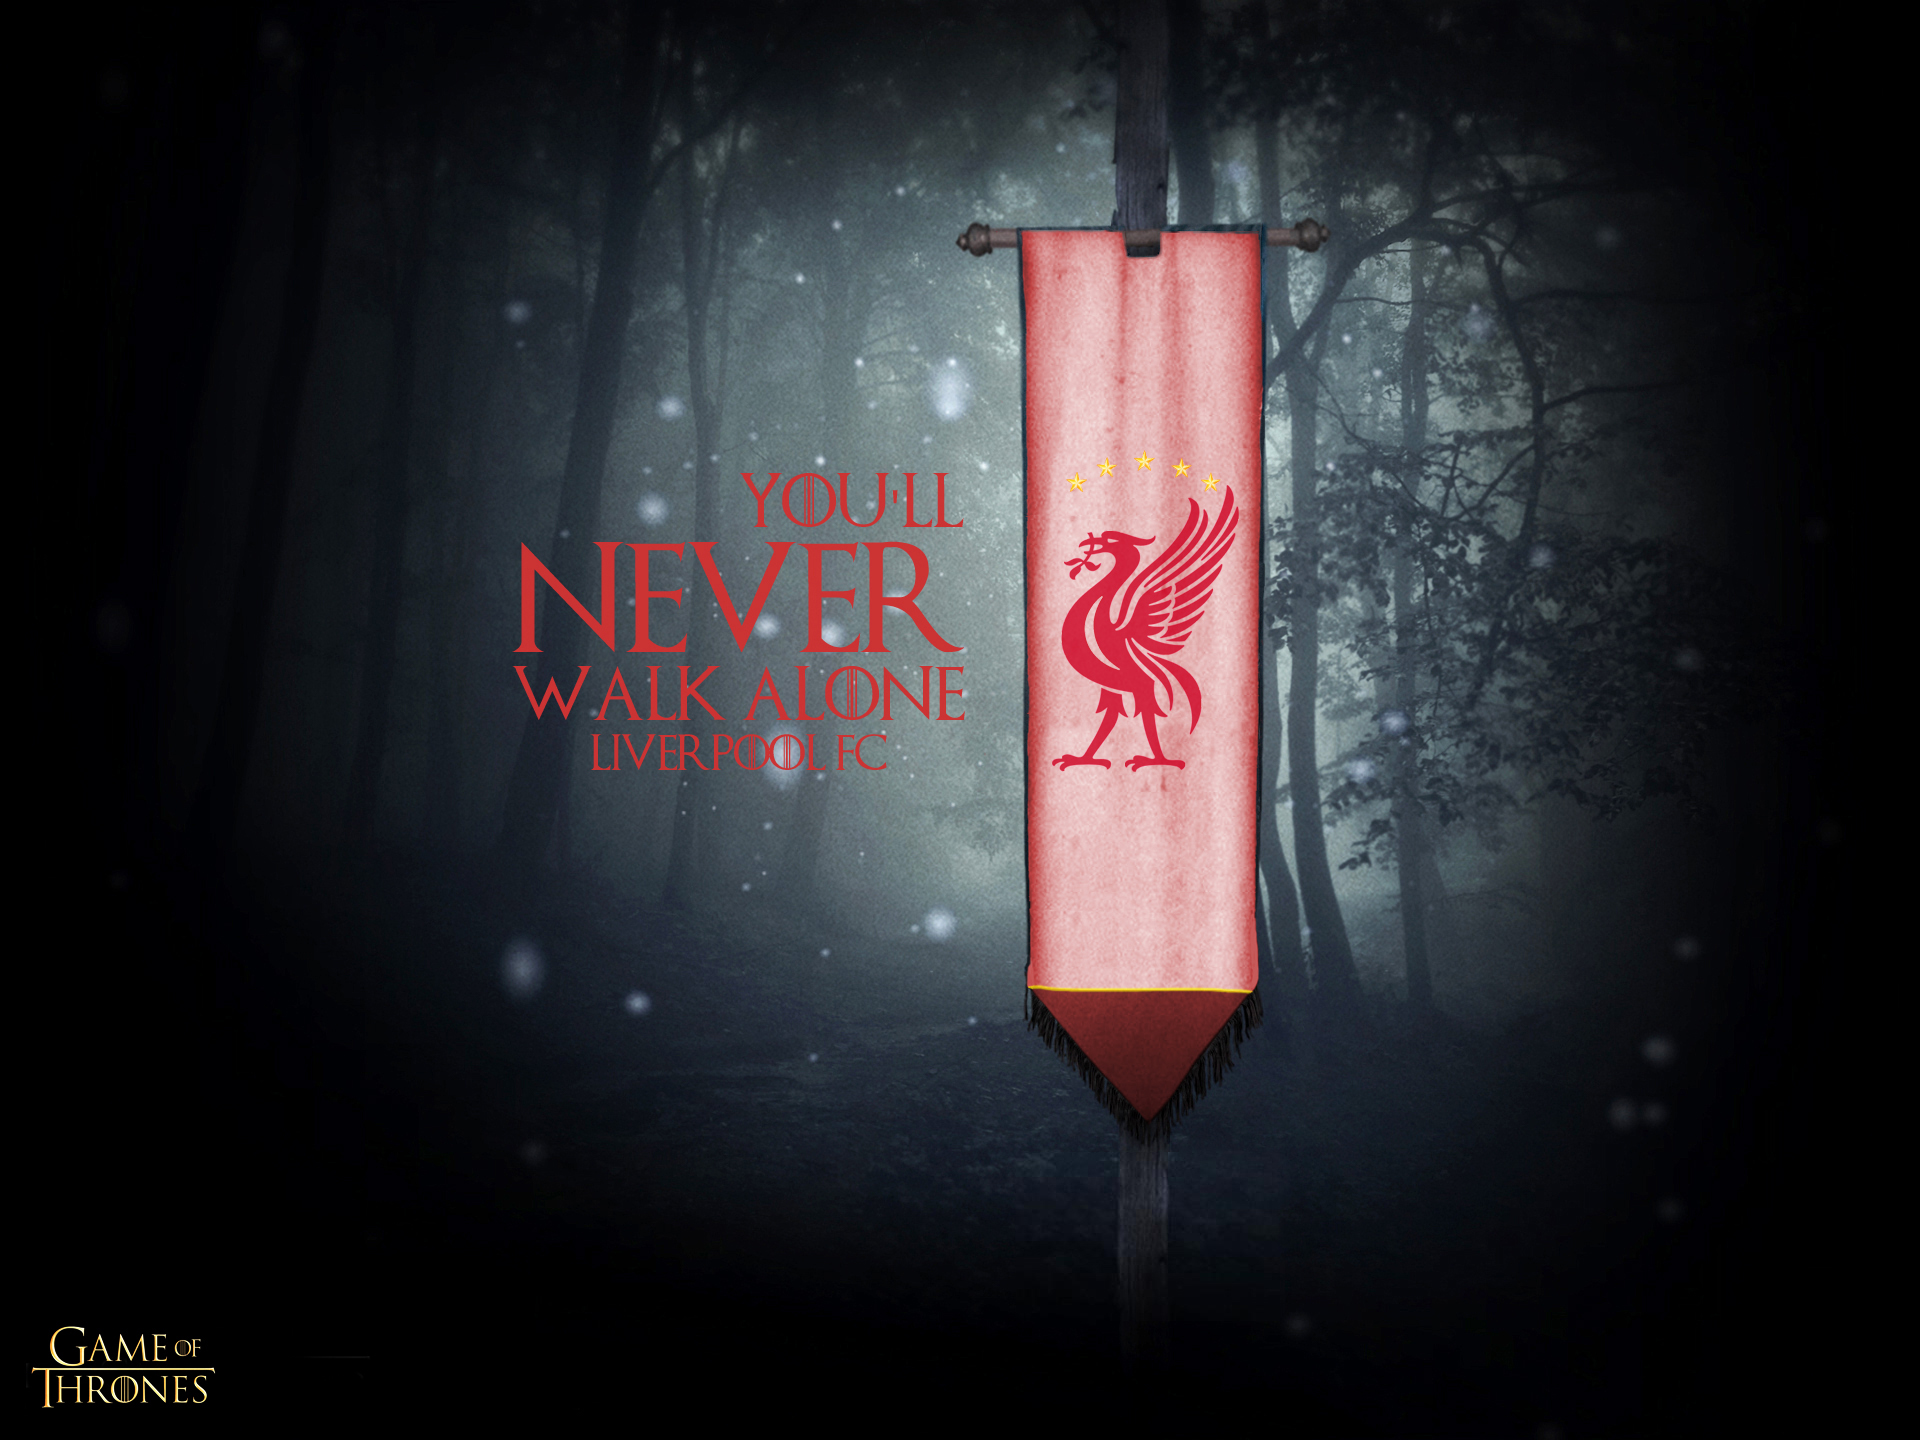 On Anfield Road Lyrics Liverpool Fc Game Of Thrones House